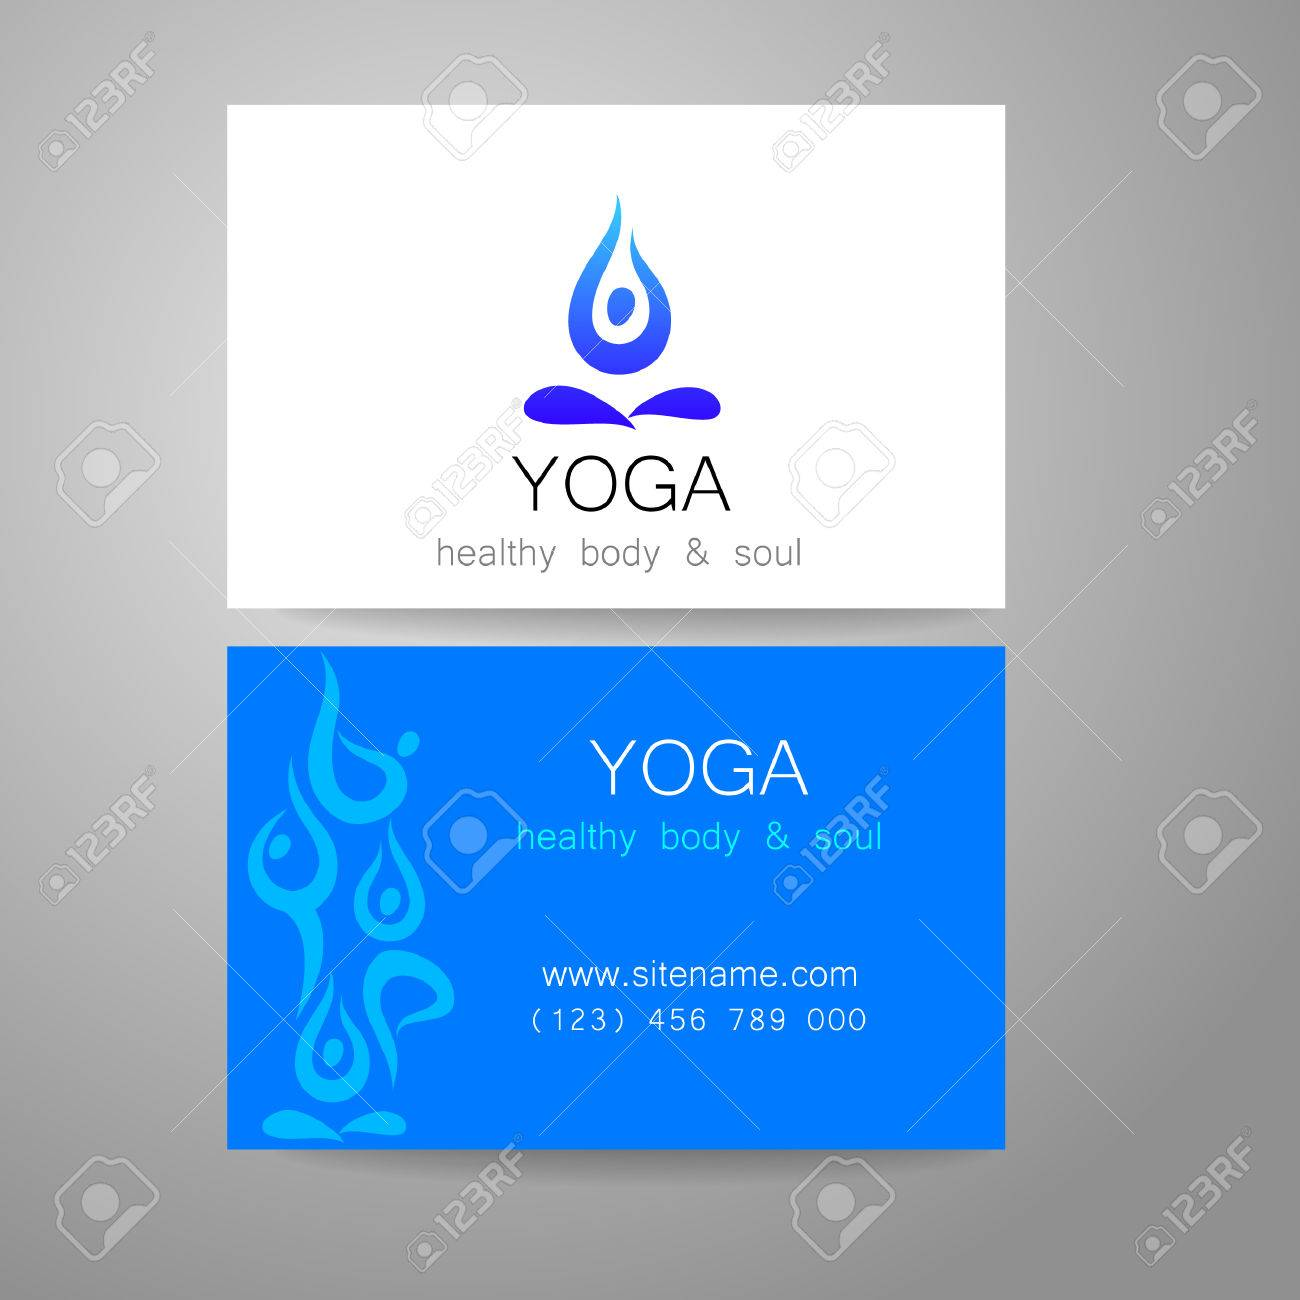 Yoga Logo - Sign Design And Business Cards. Template For Yoga ...